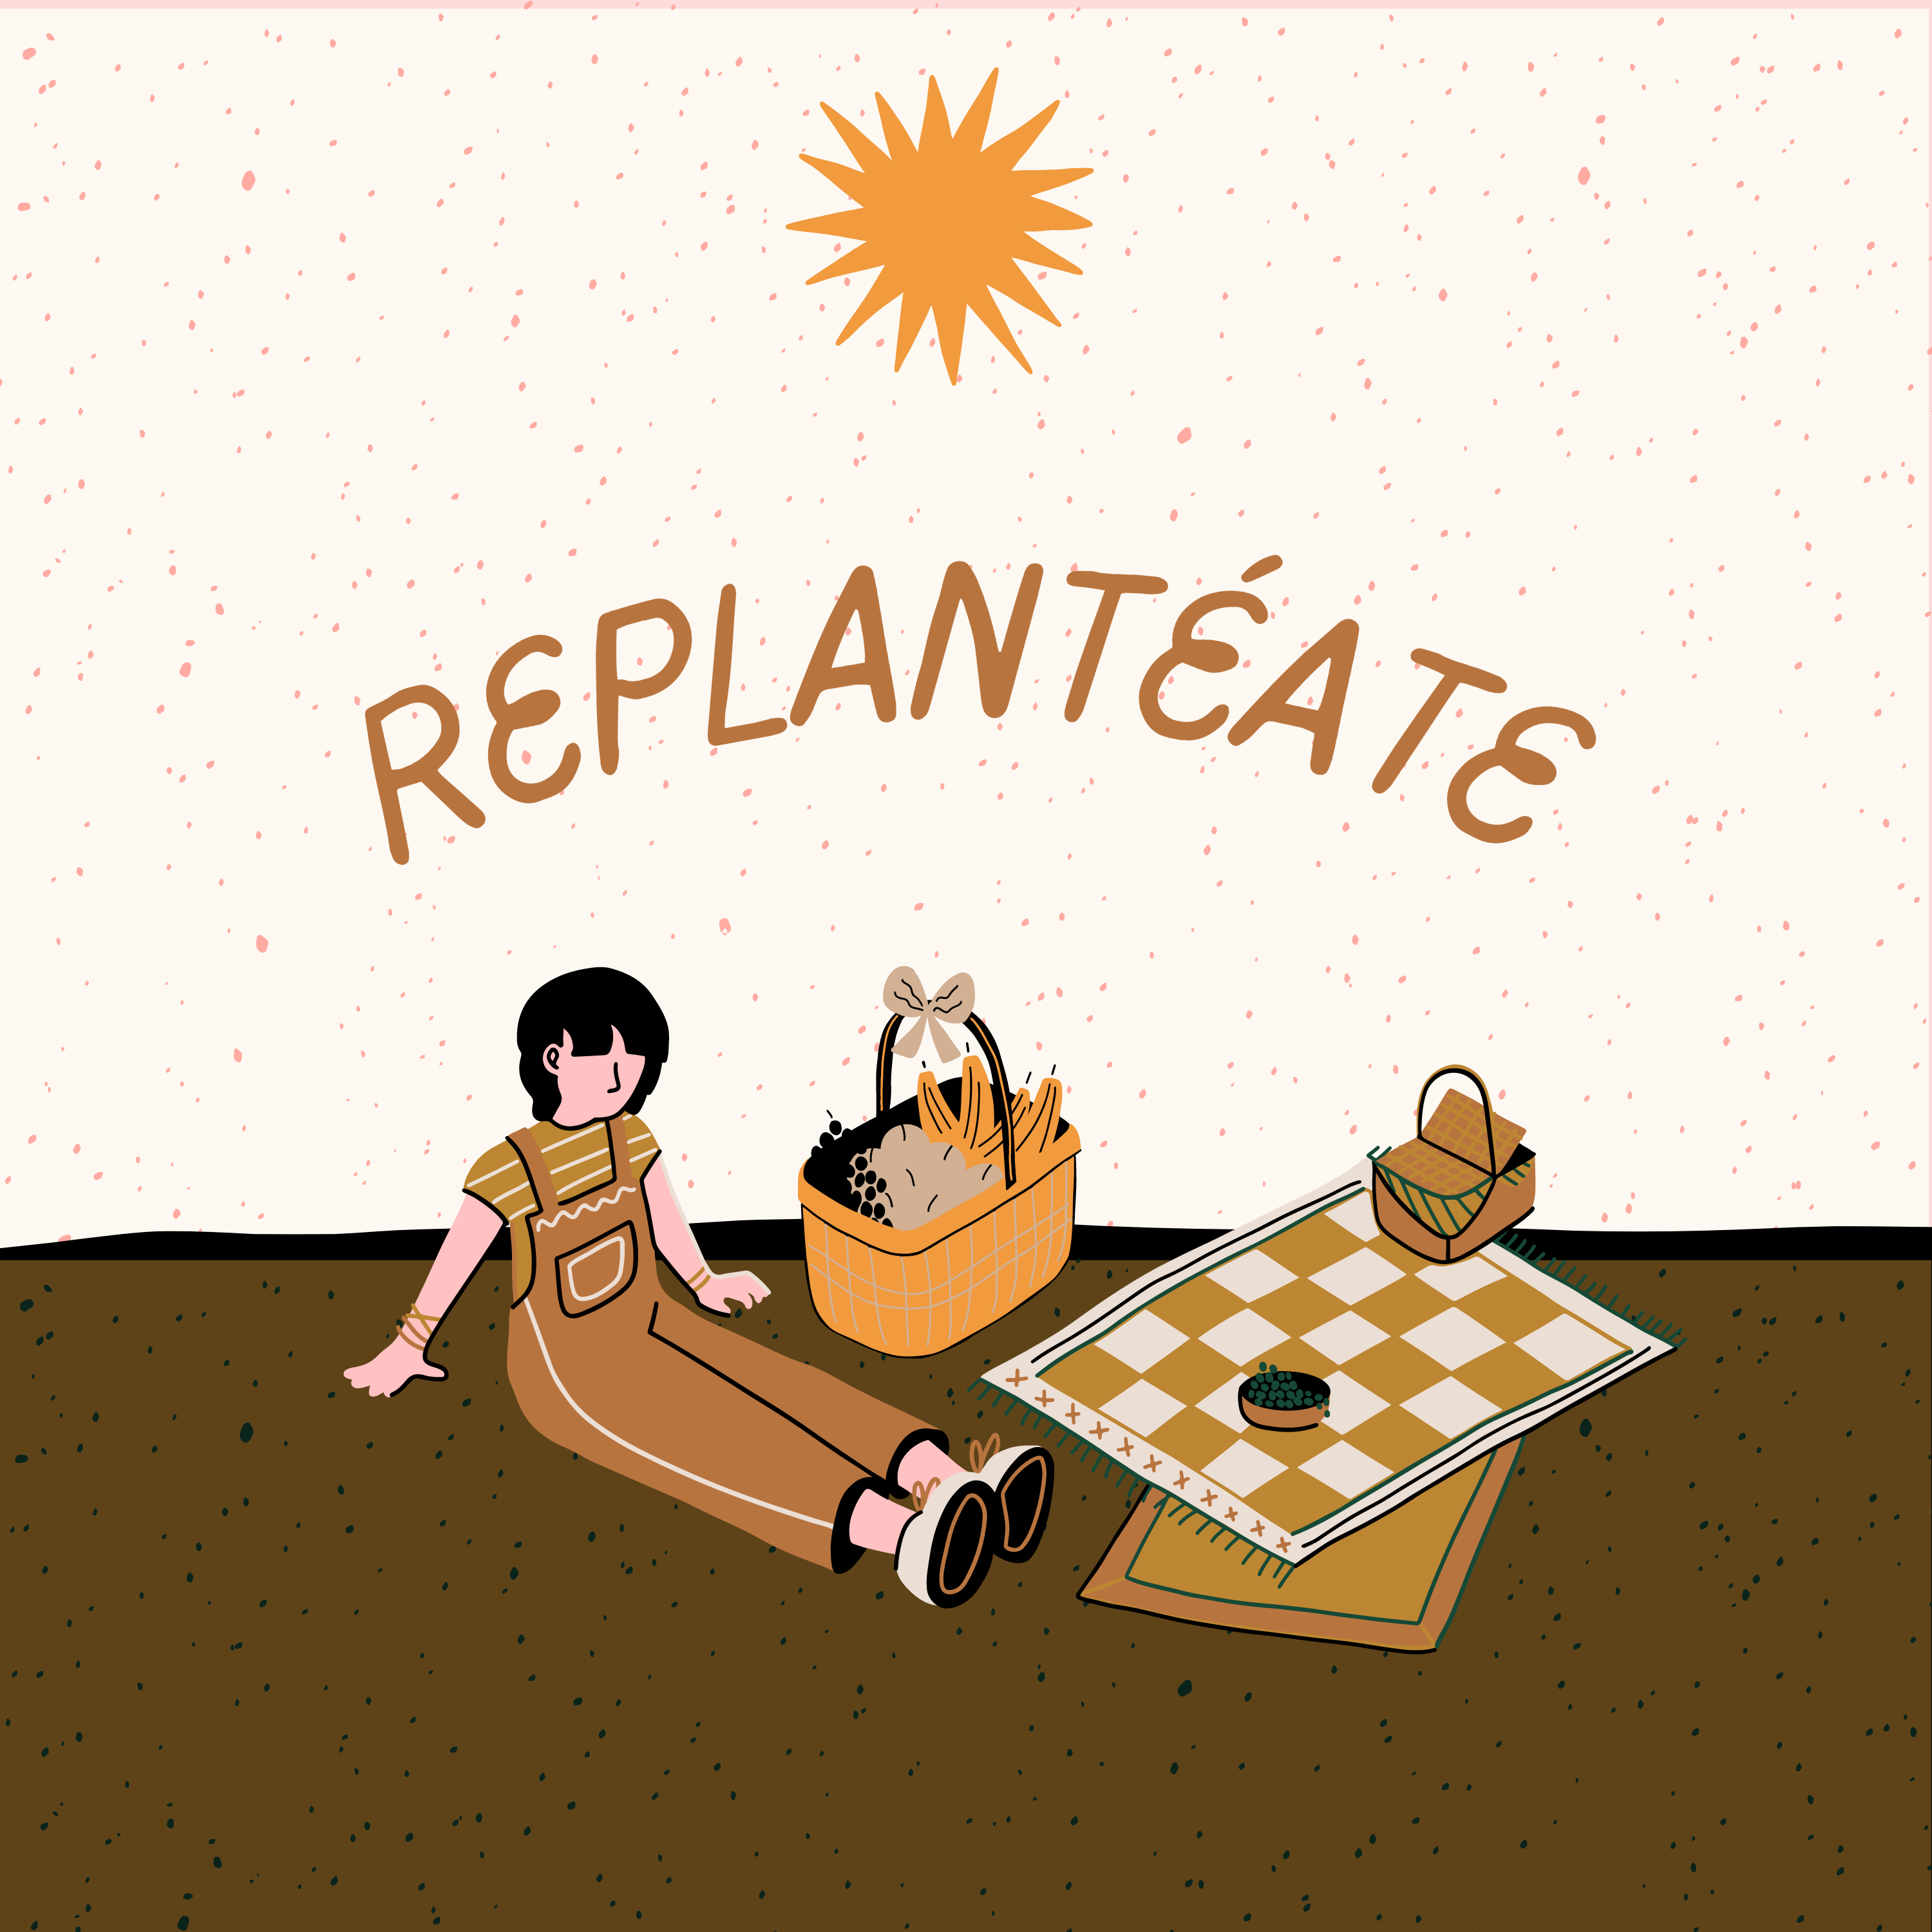 replanteate's podcast show image